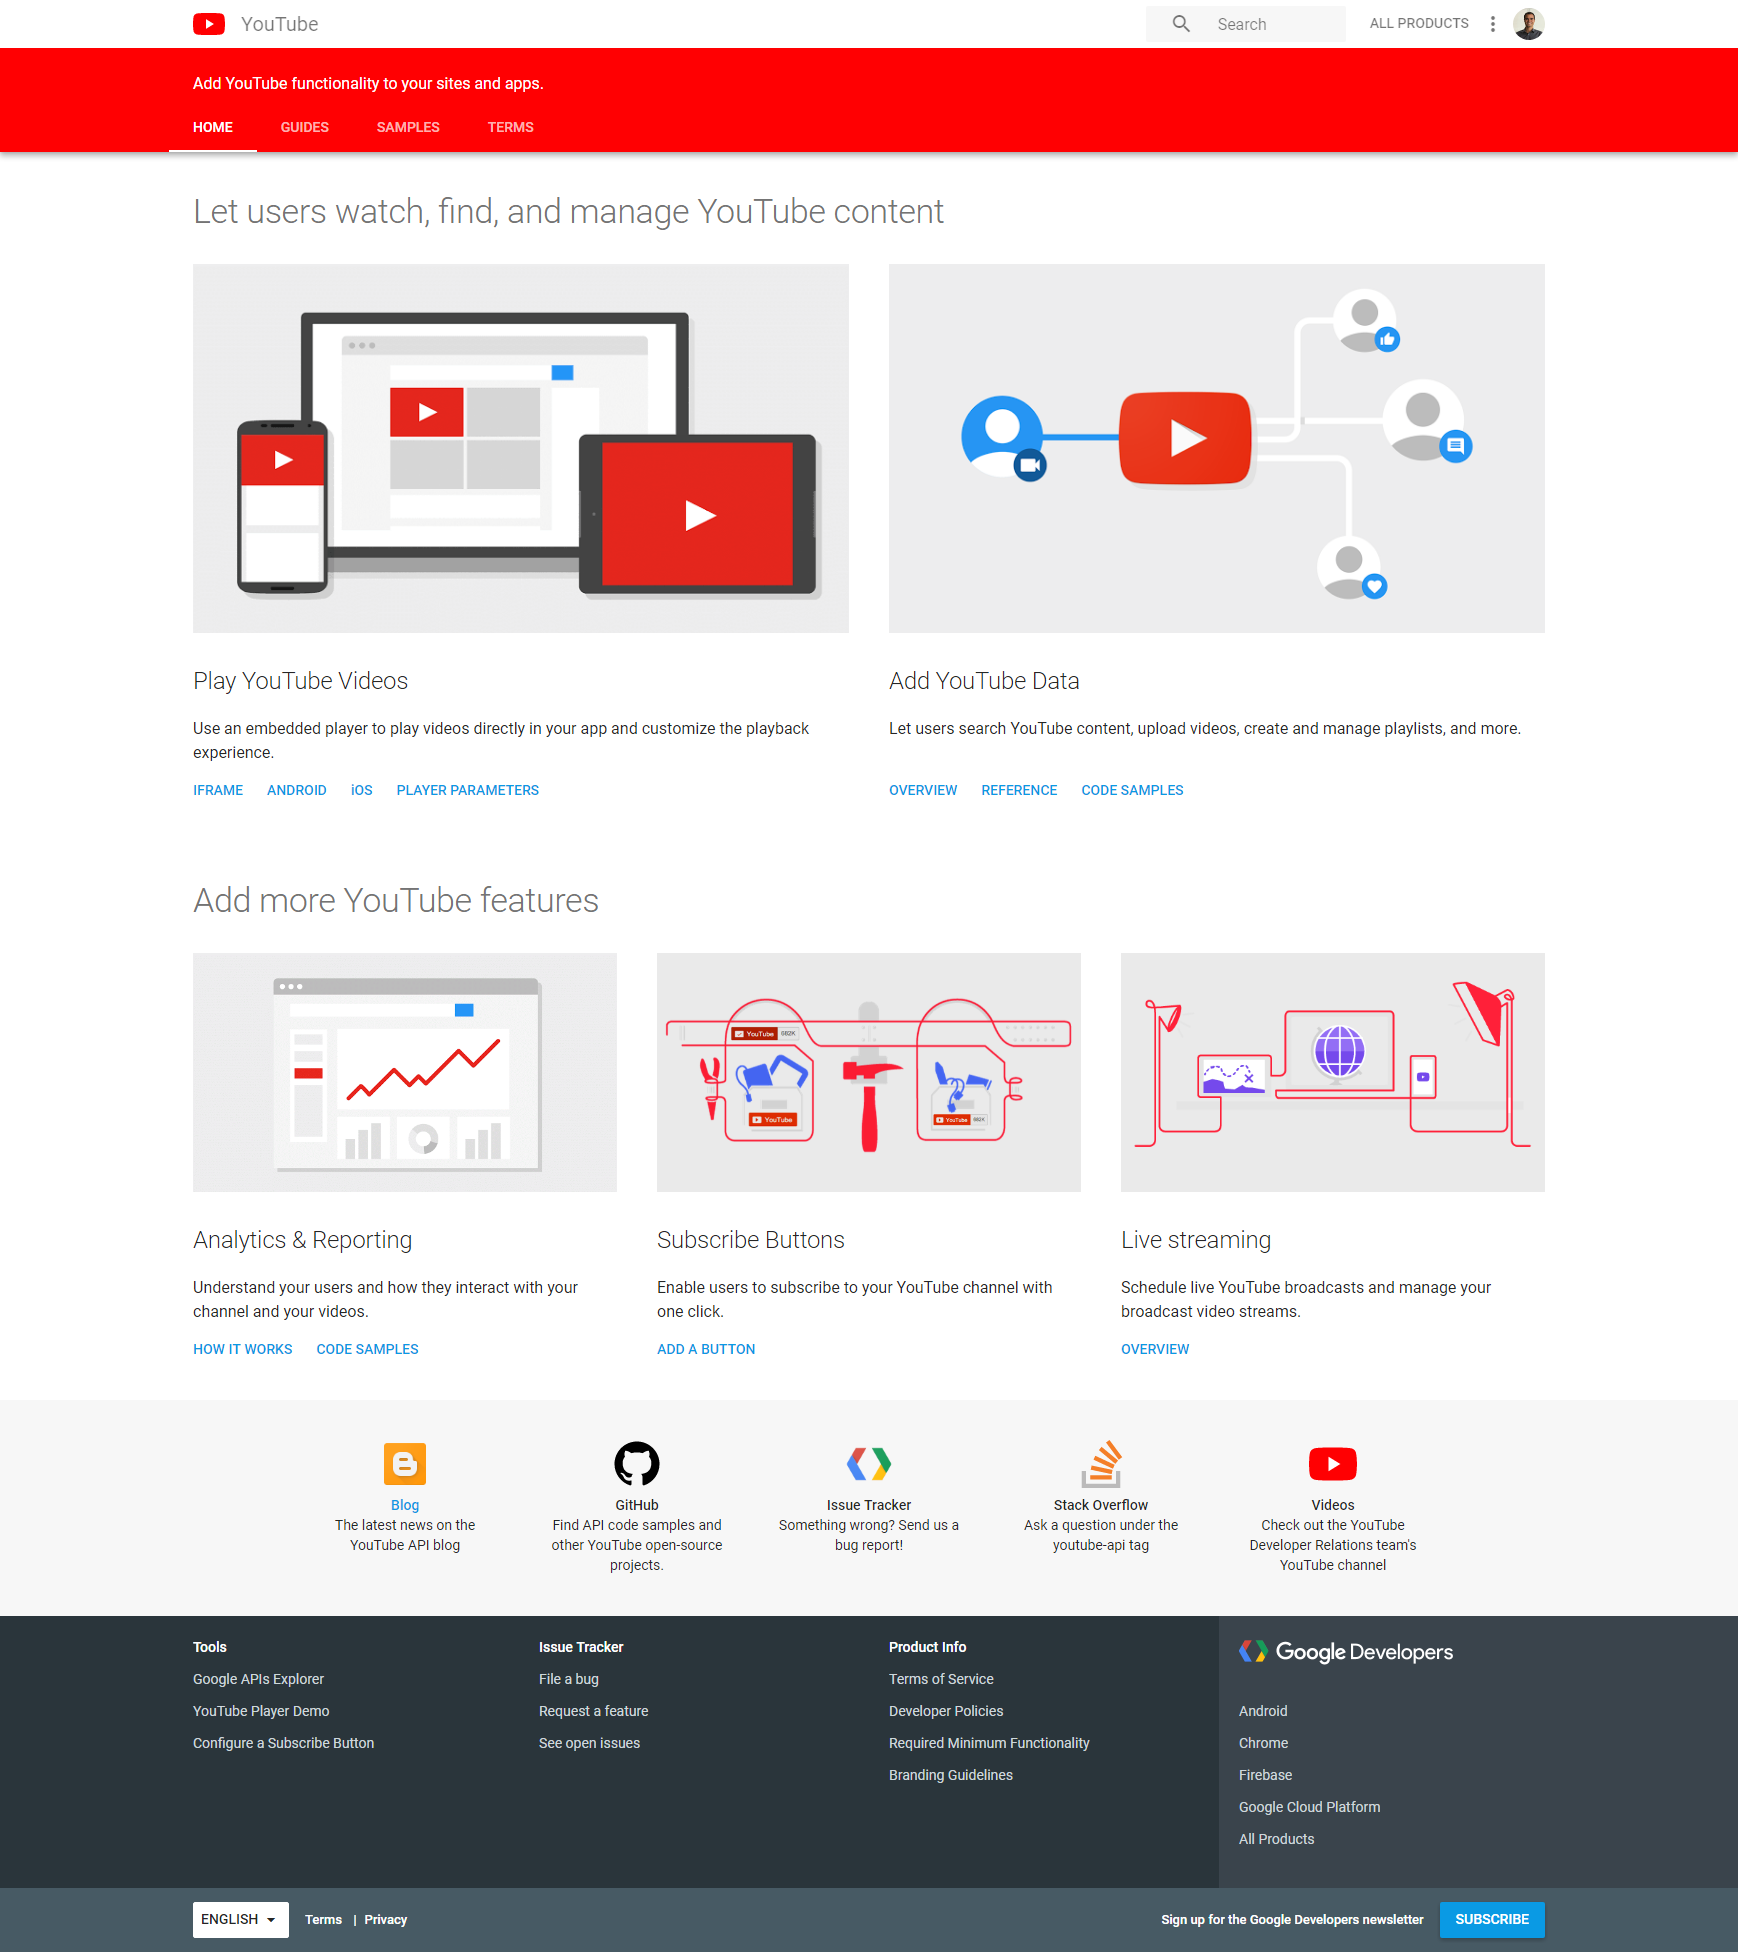 Figure 2: The YouTube developer portal home page clearly shows the available APIs and what can be done with each  - get playlist contents youtube data api figure 02 youtube developer portal - How To Get YouTube Playlist Contents from the YouTube Data API